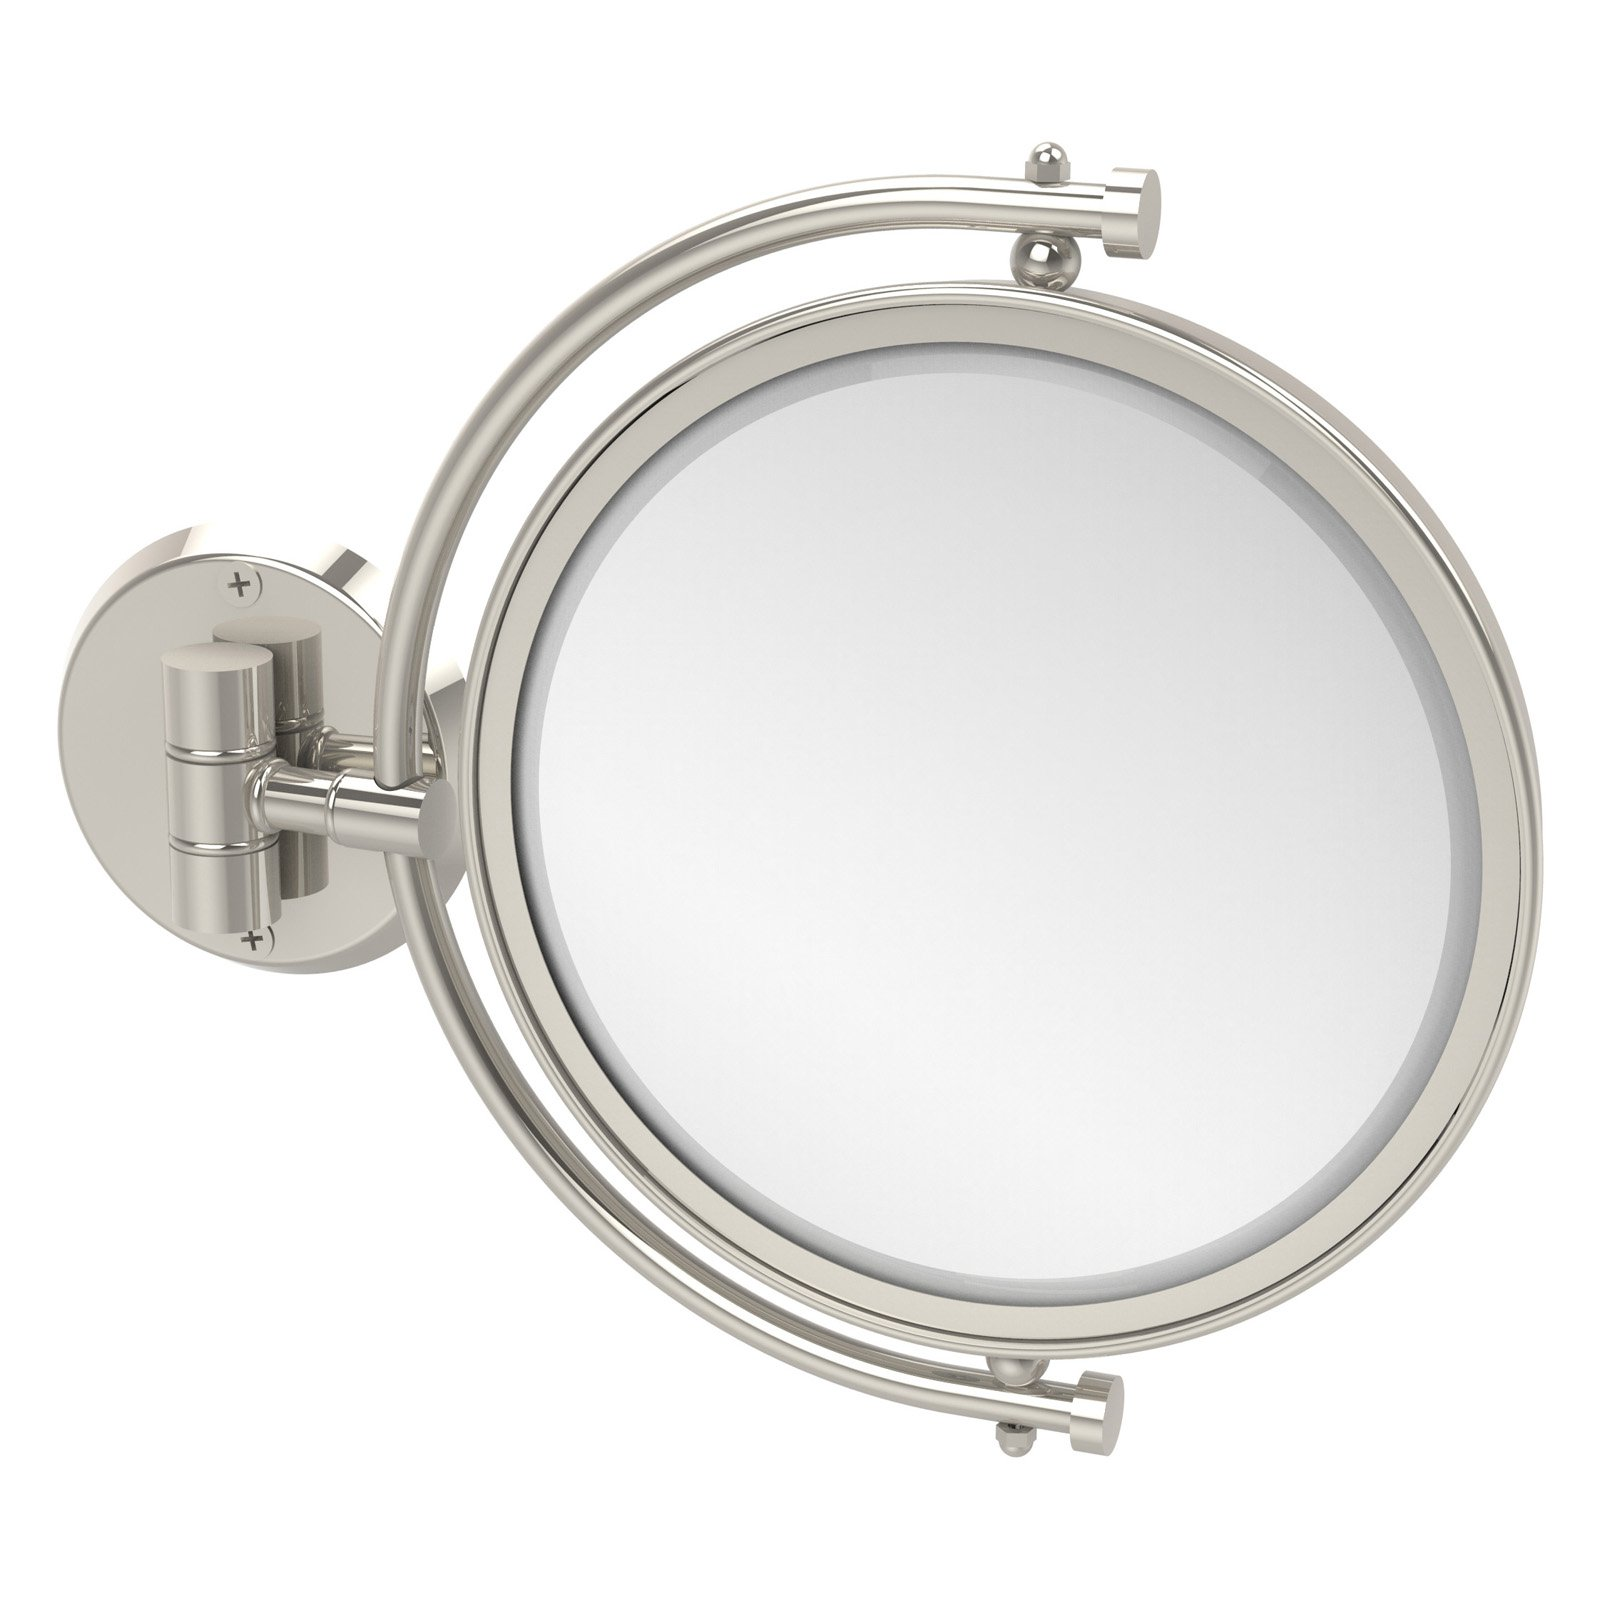 Allied Brass Wall Mounted Makeup Mirror with 4X